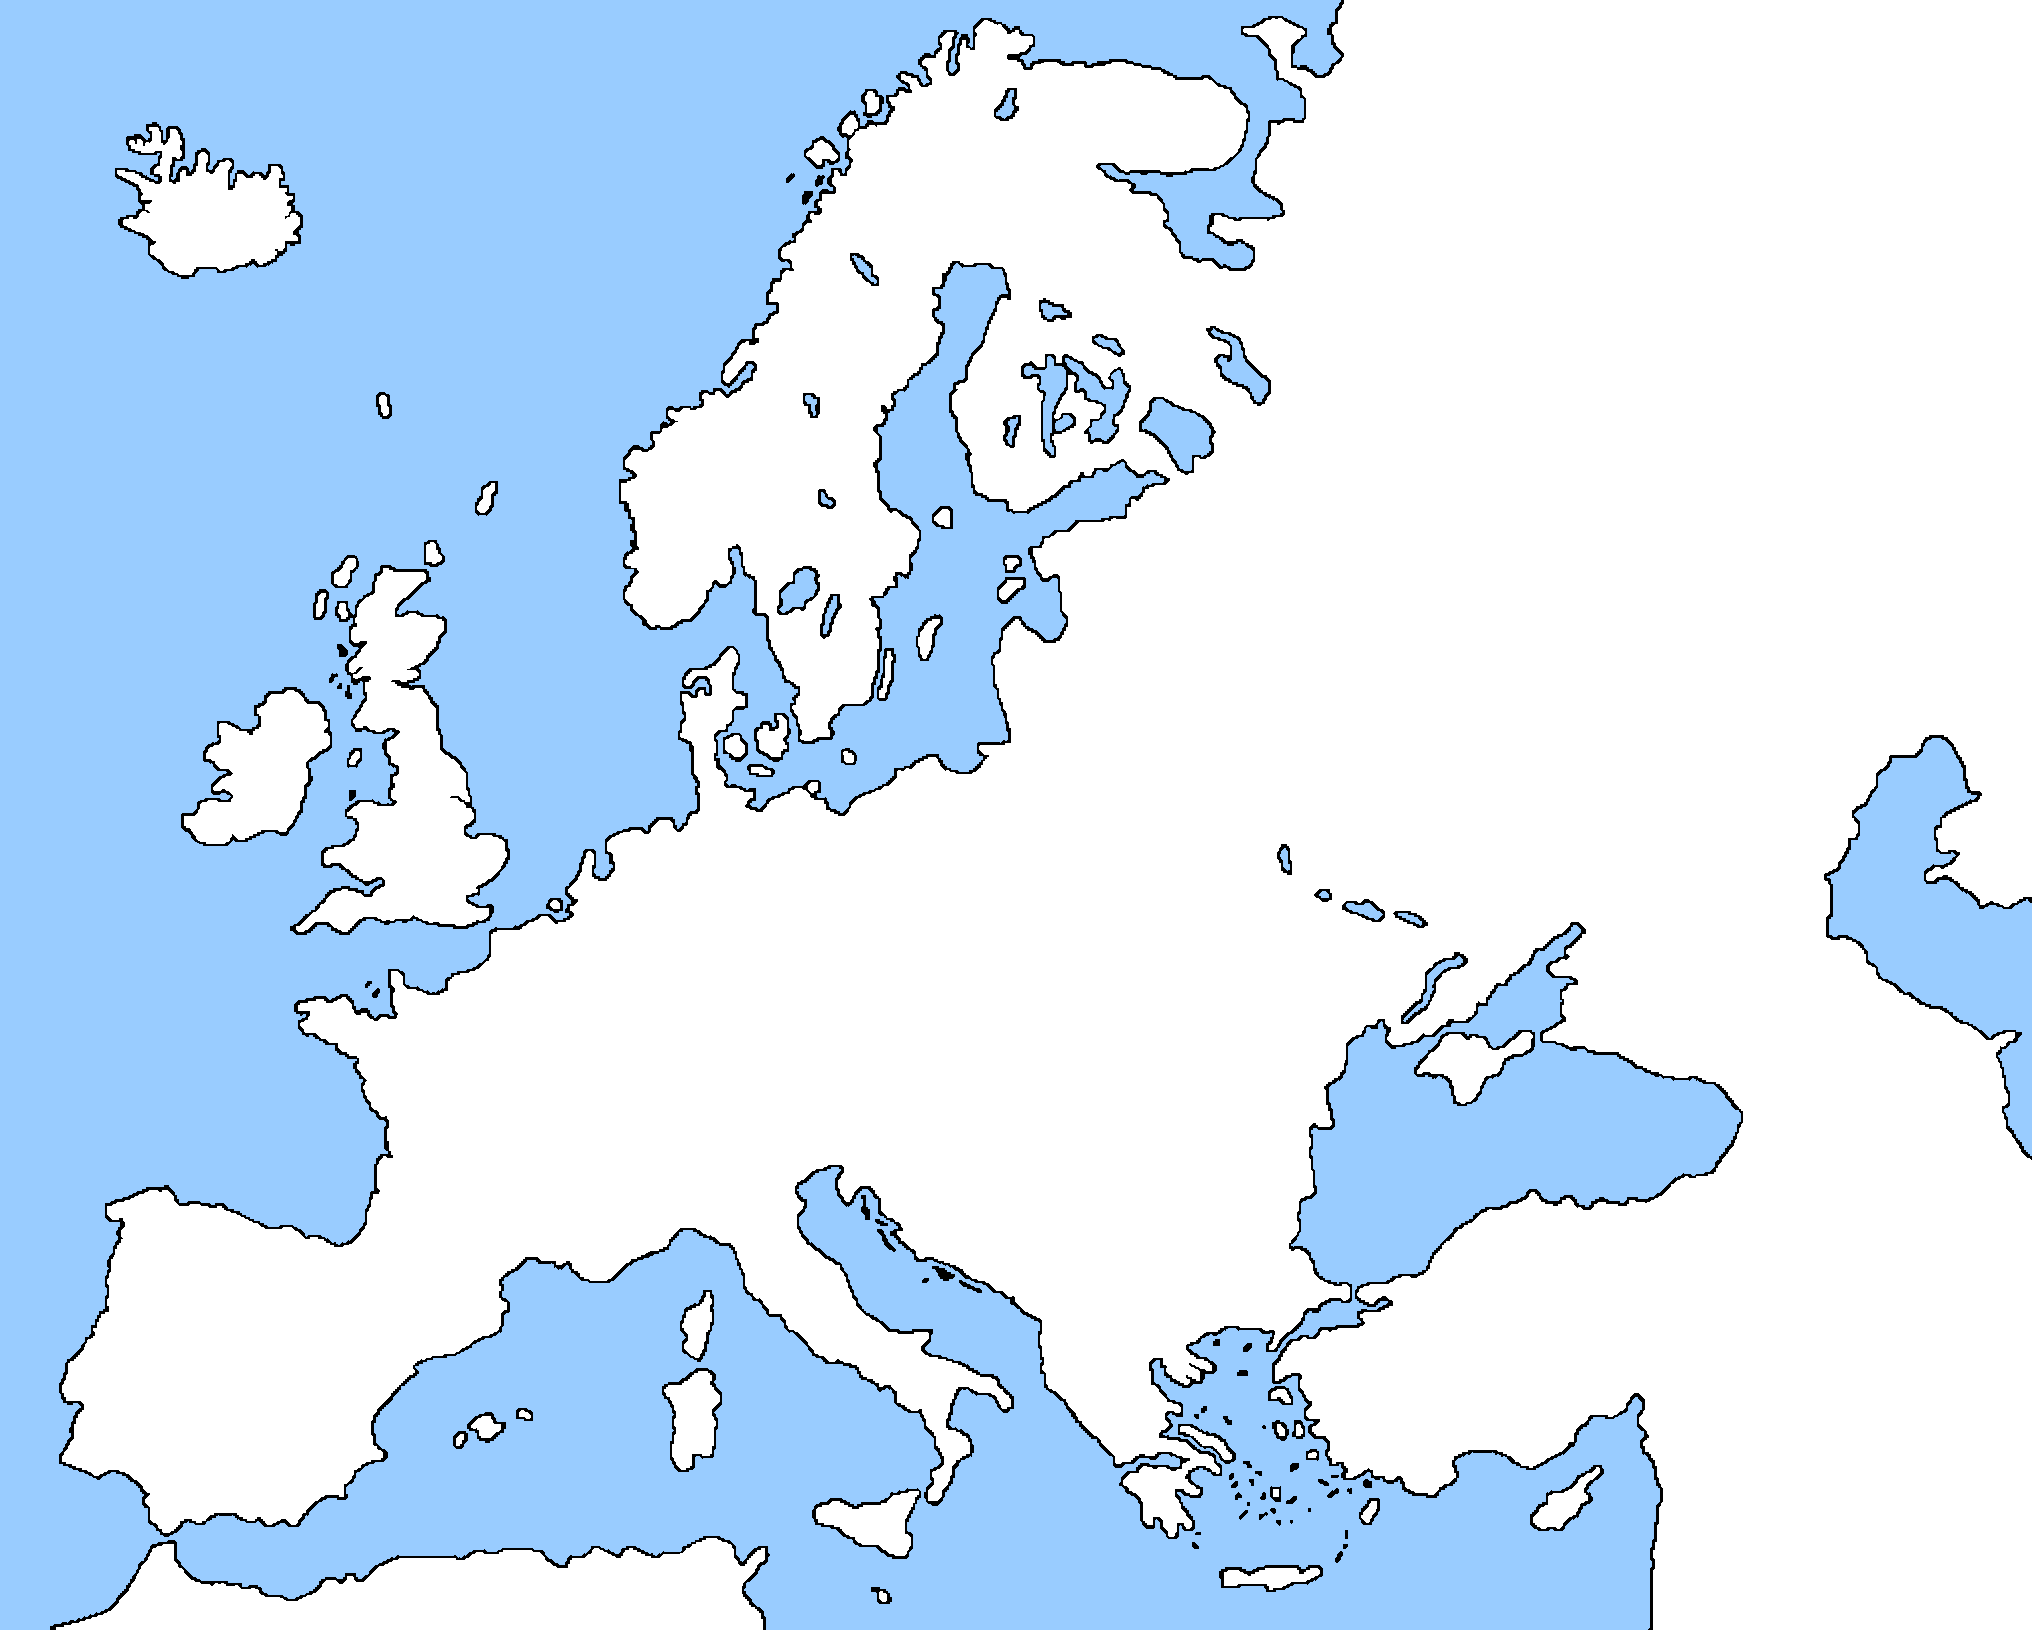 Image   Blank map of Europe without borders by eric4e.png